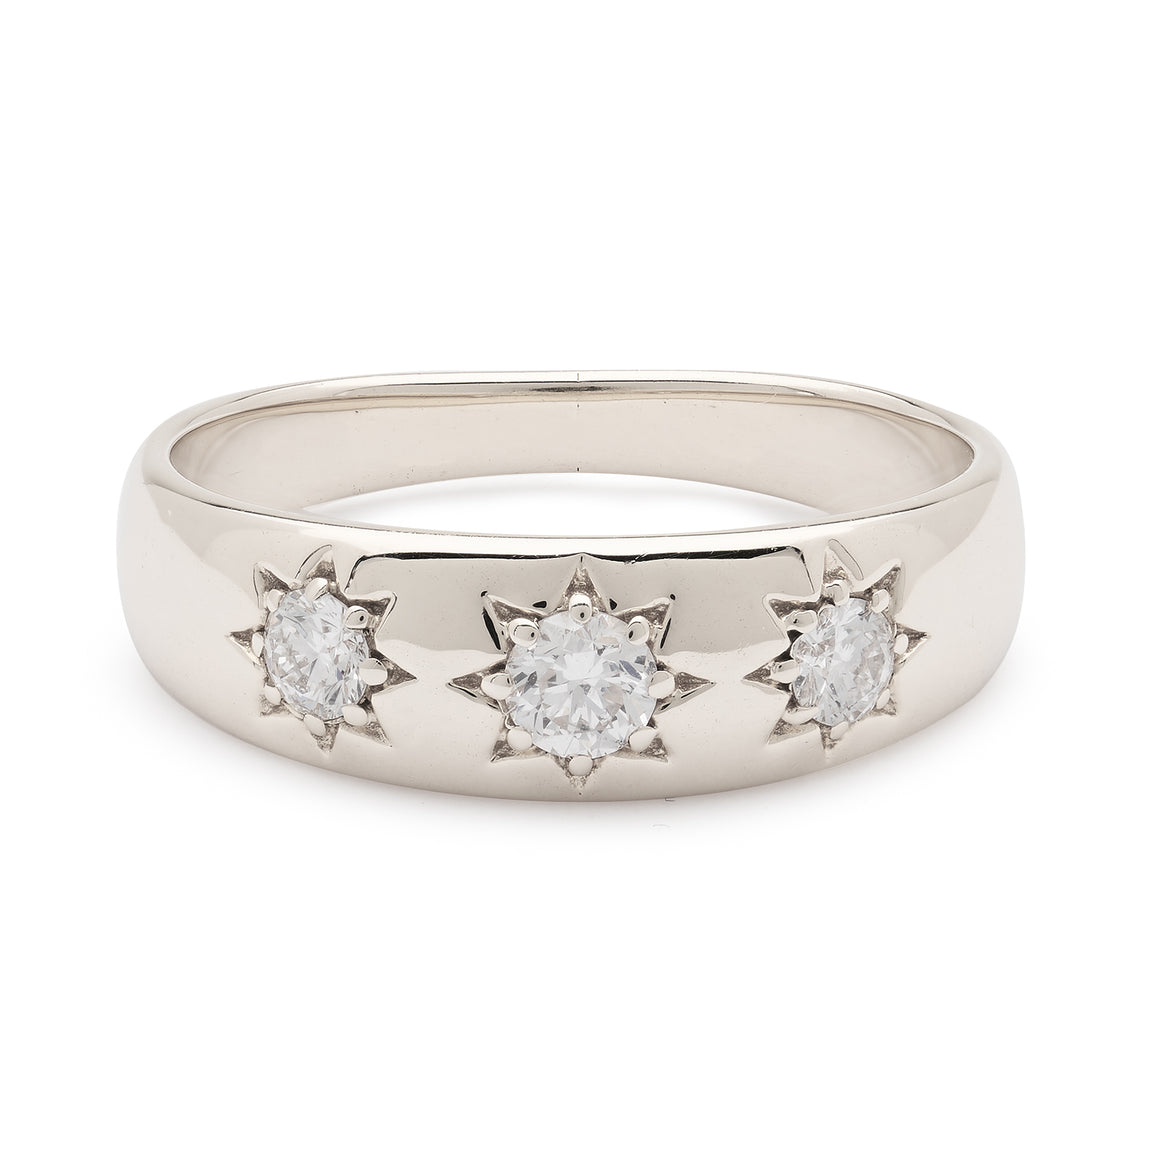 LUCKY STAR WHITE GOLD RING